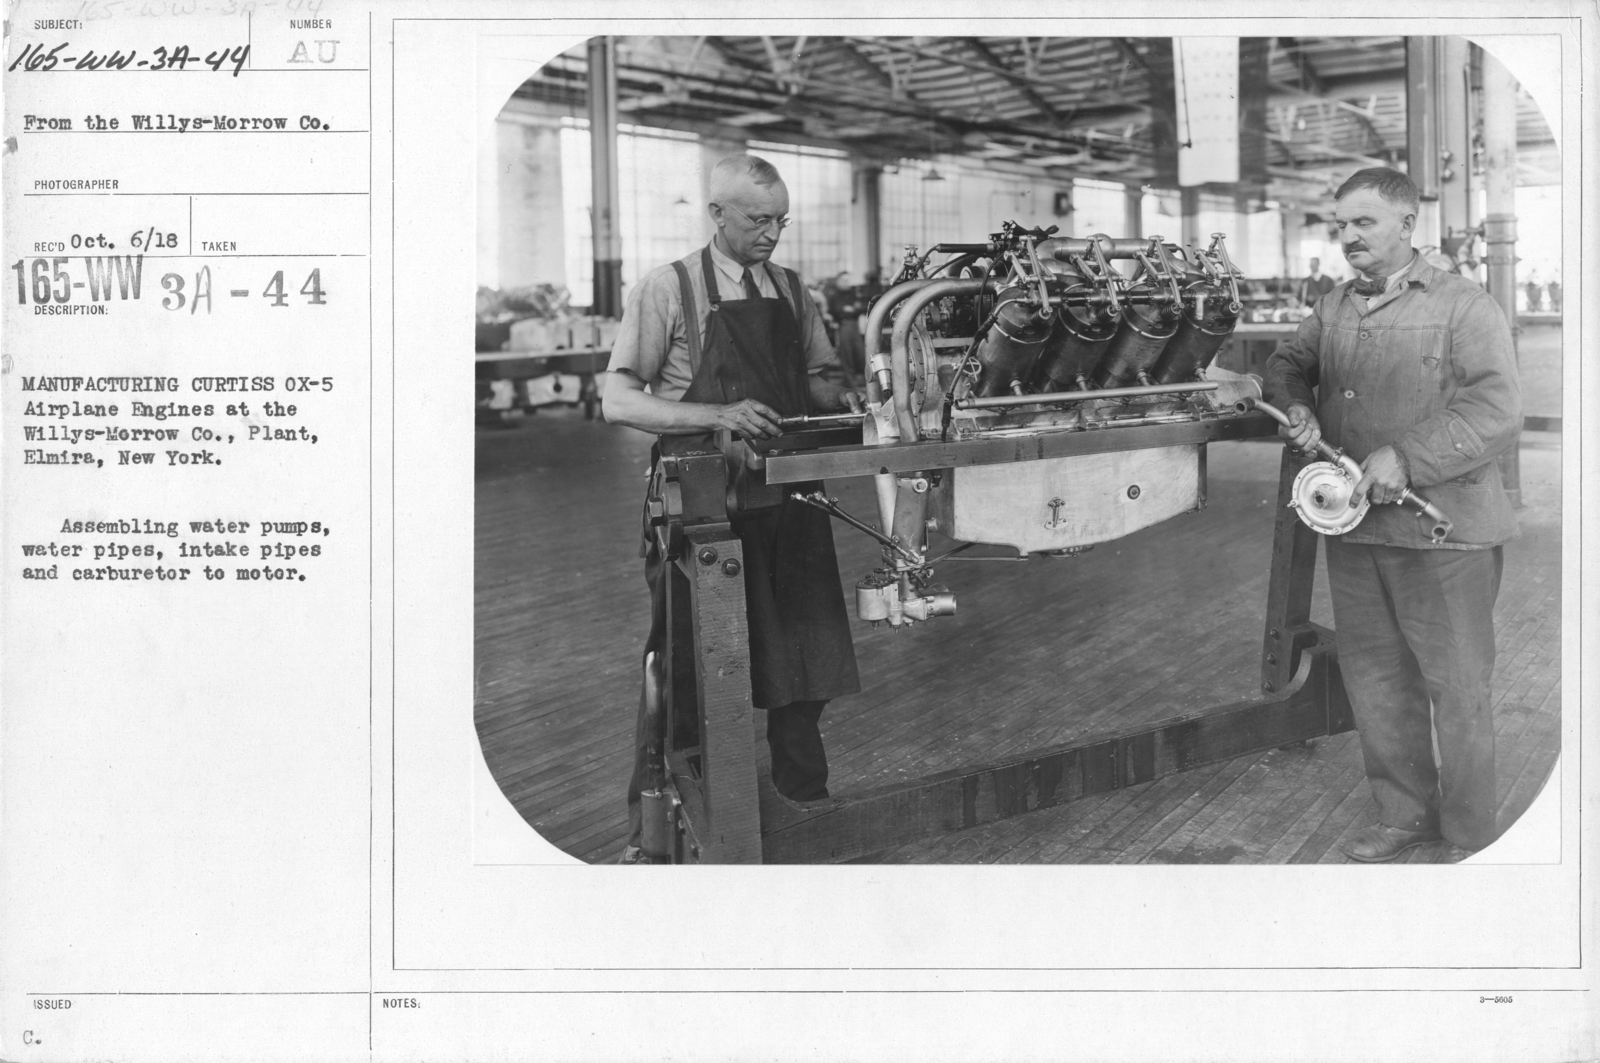 Airplanes - Engines - Manufacturing Curtiss Ox-5 airplane engines at the Willy-s Morrow Plant, Elmira, New York. Assembling water pumps, water pipes, intake pipes and carburetor to motor